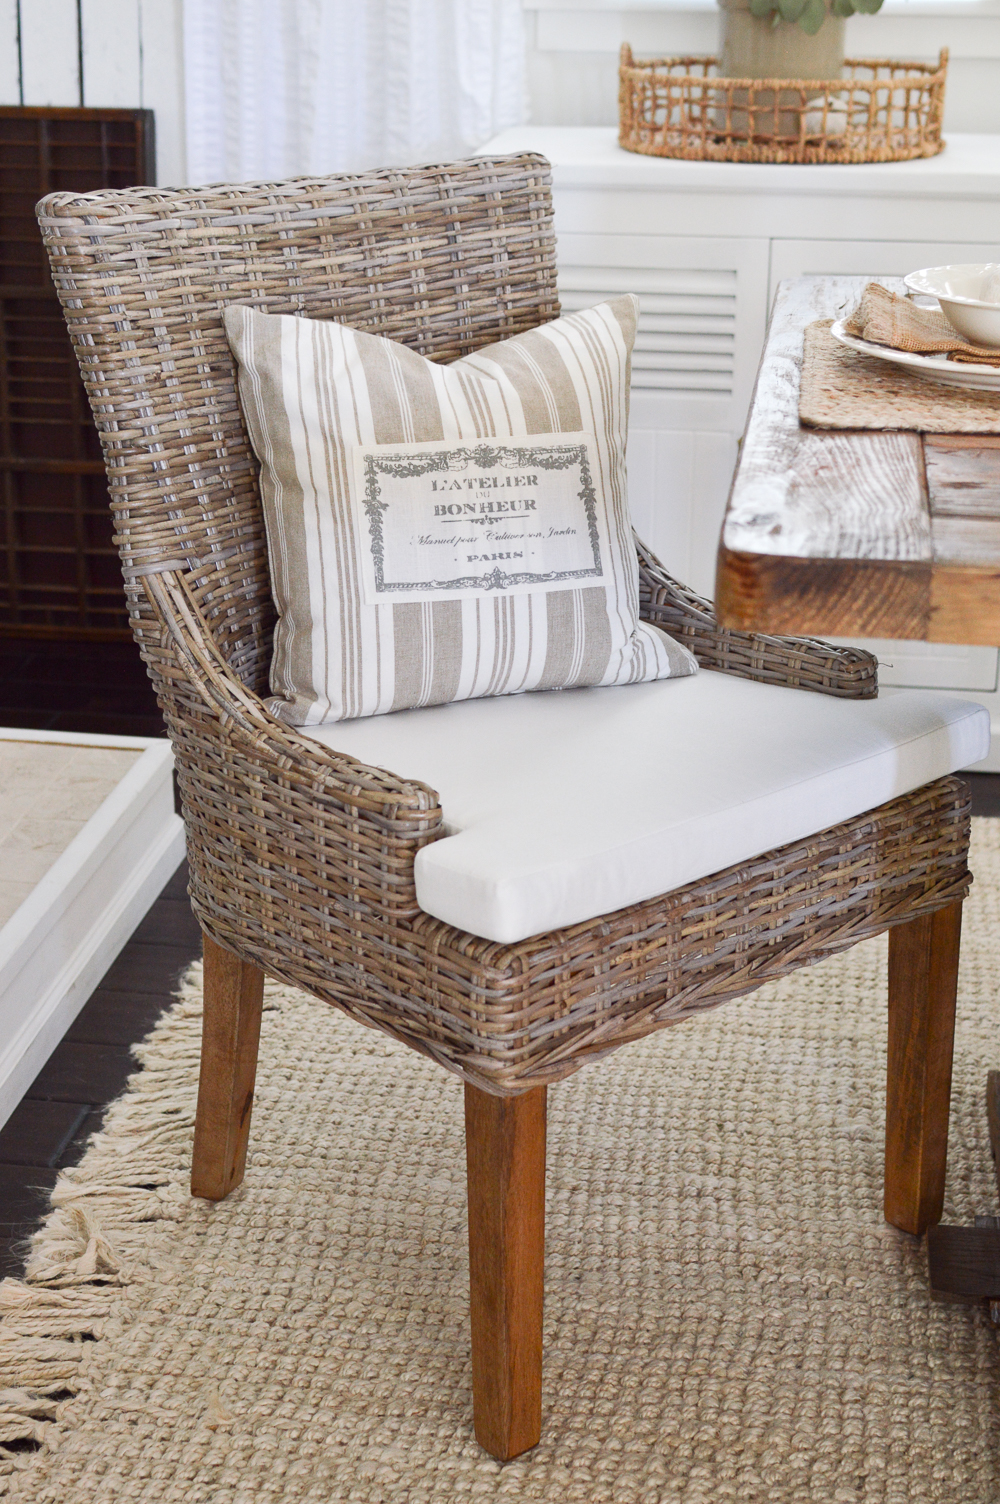 Rattan dining room chair with French grain stripe pillow - Farmhouse dining room Fall farm house decorating ideas